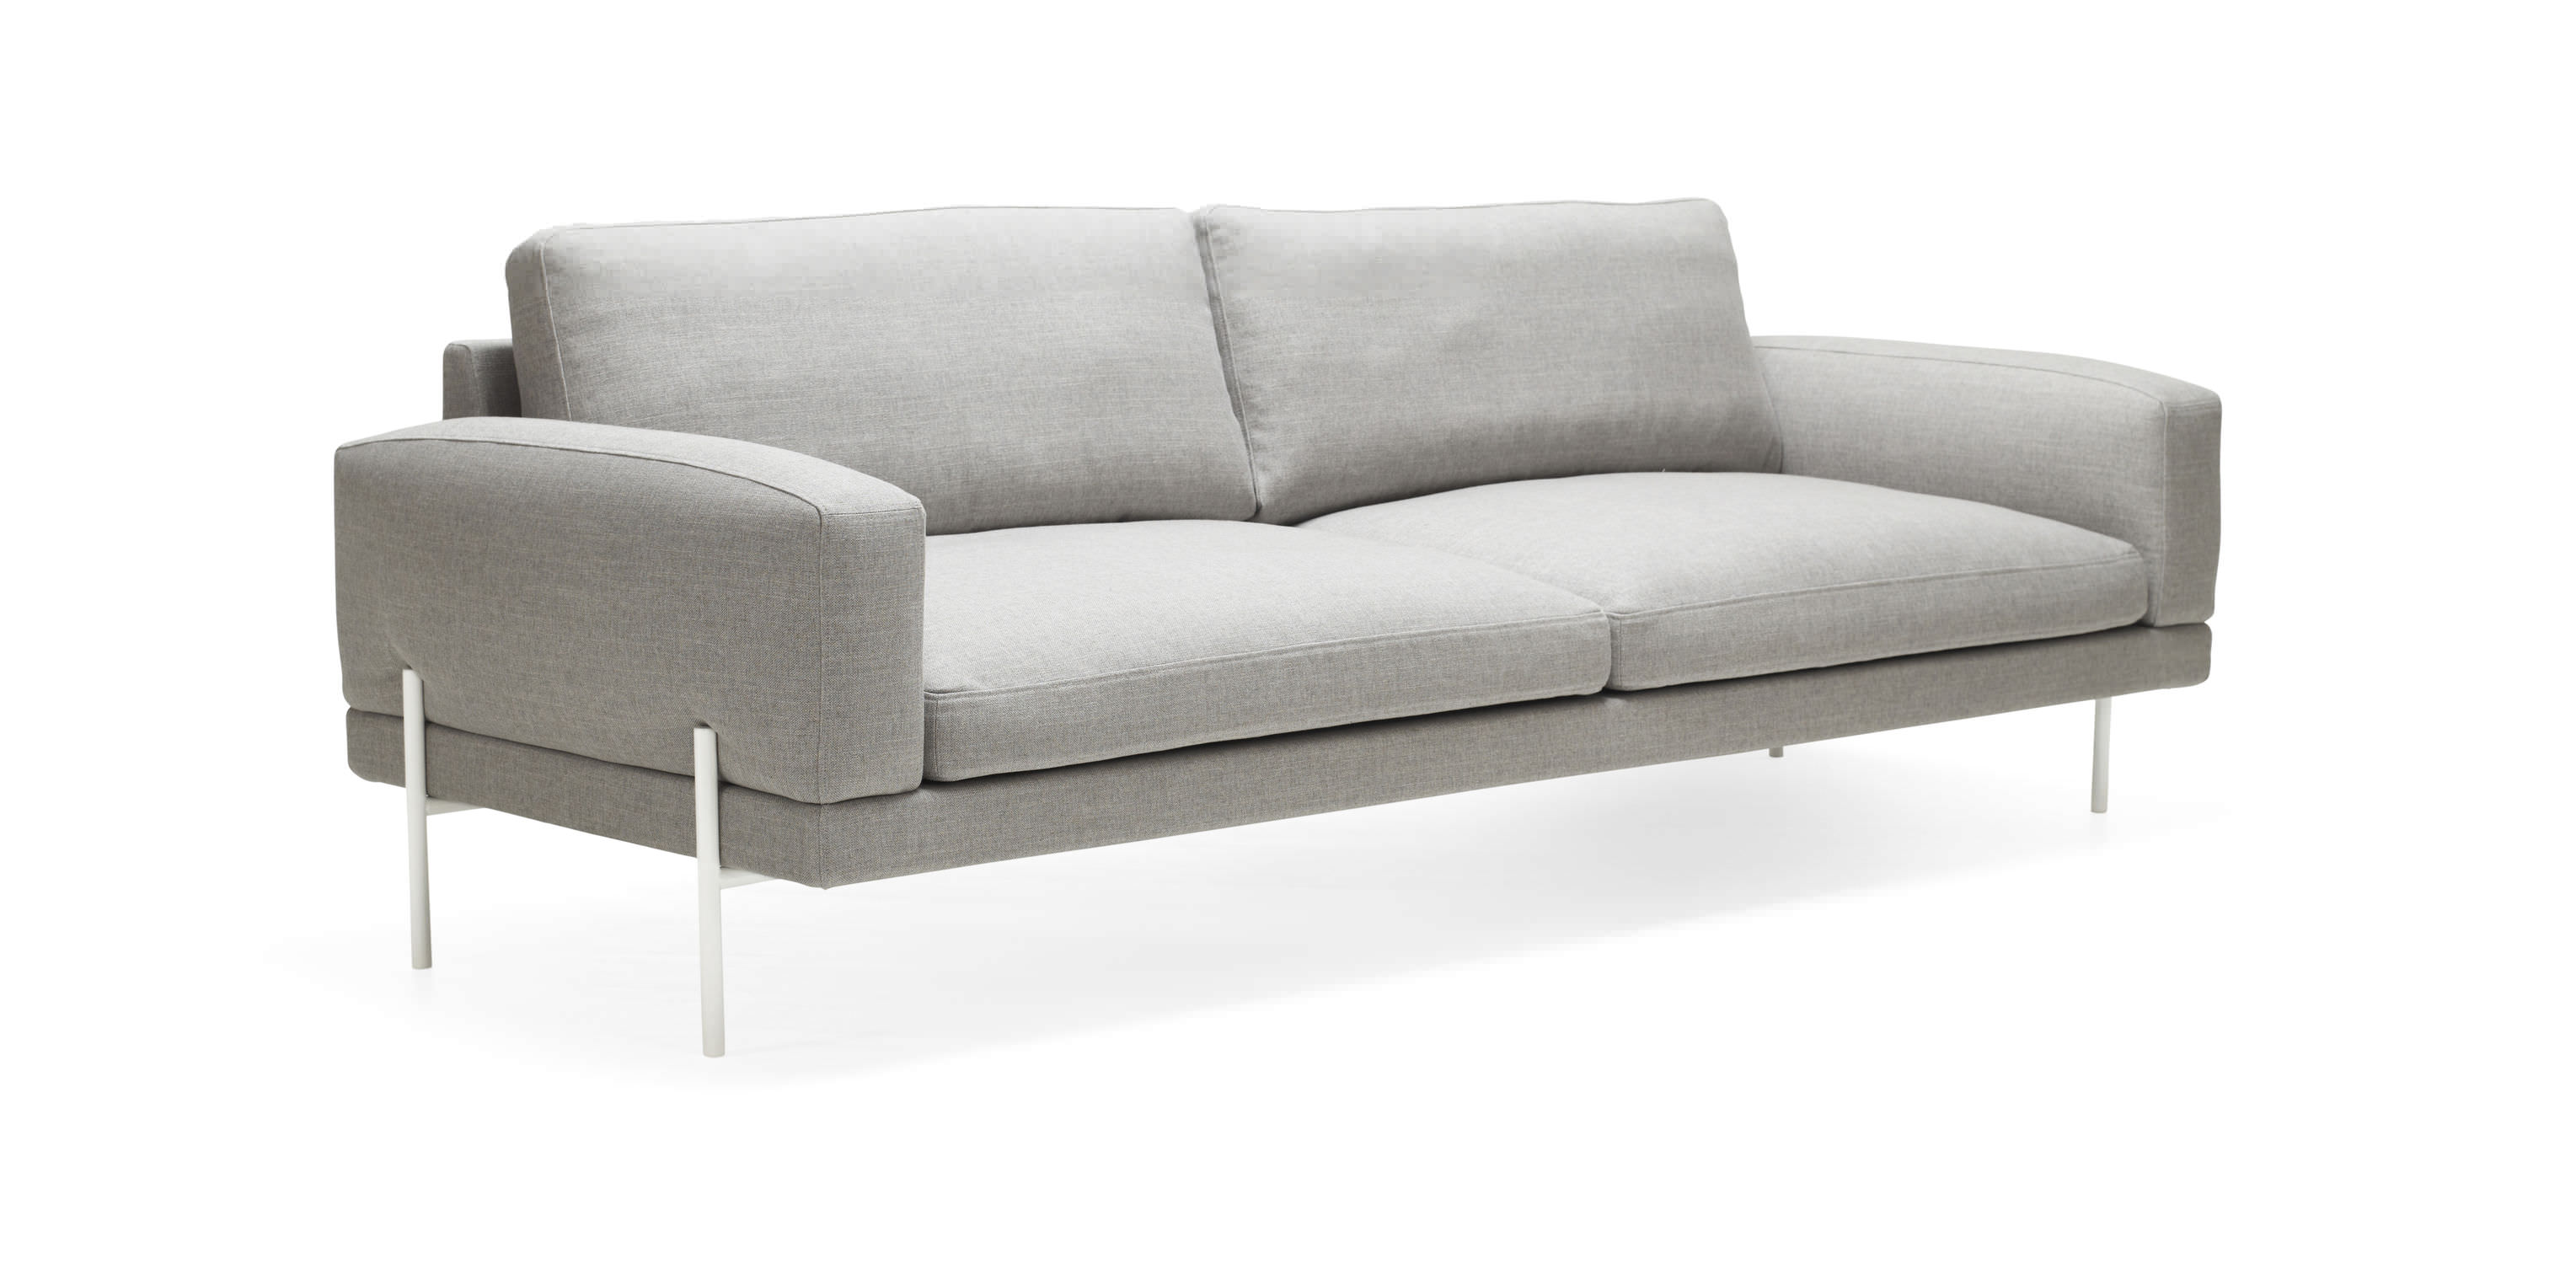 Contemporary sofa steel 2 seater gray ARMILLA by Emma